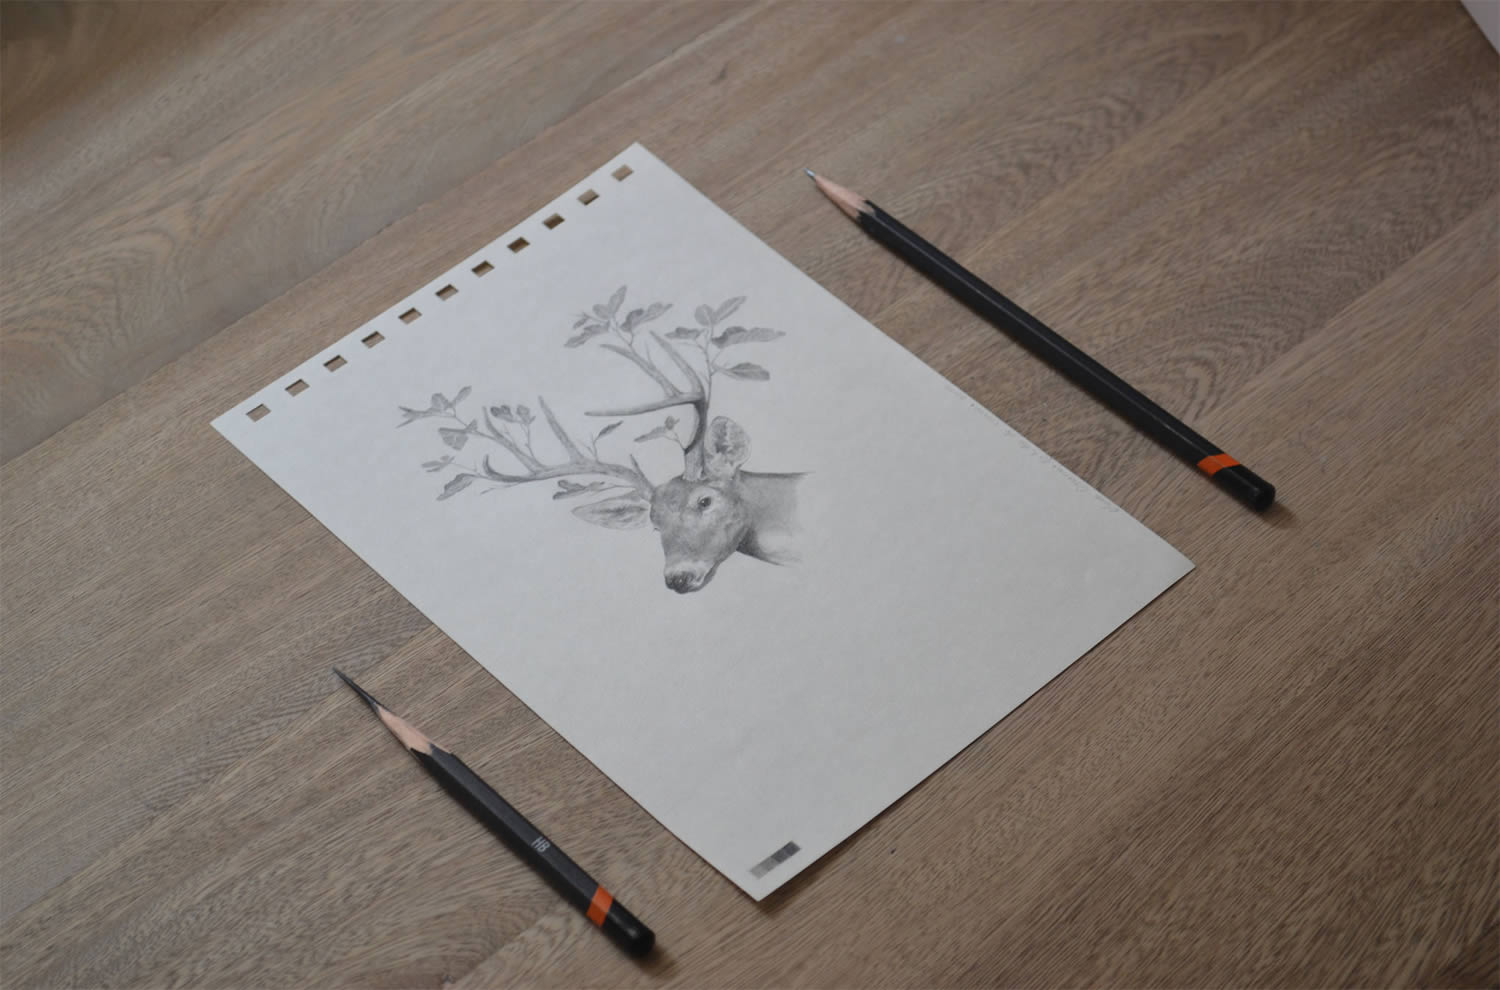 dear with plant antlers, drawing